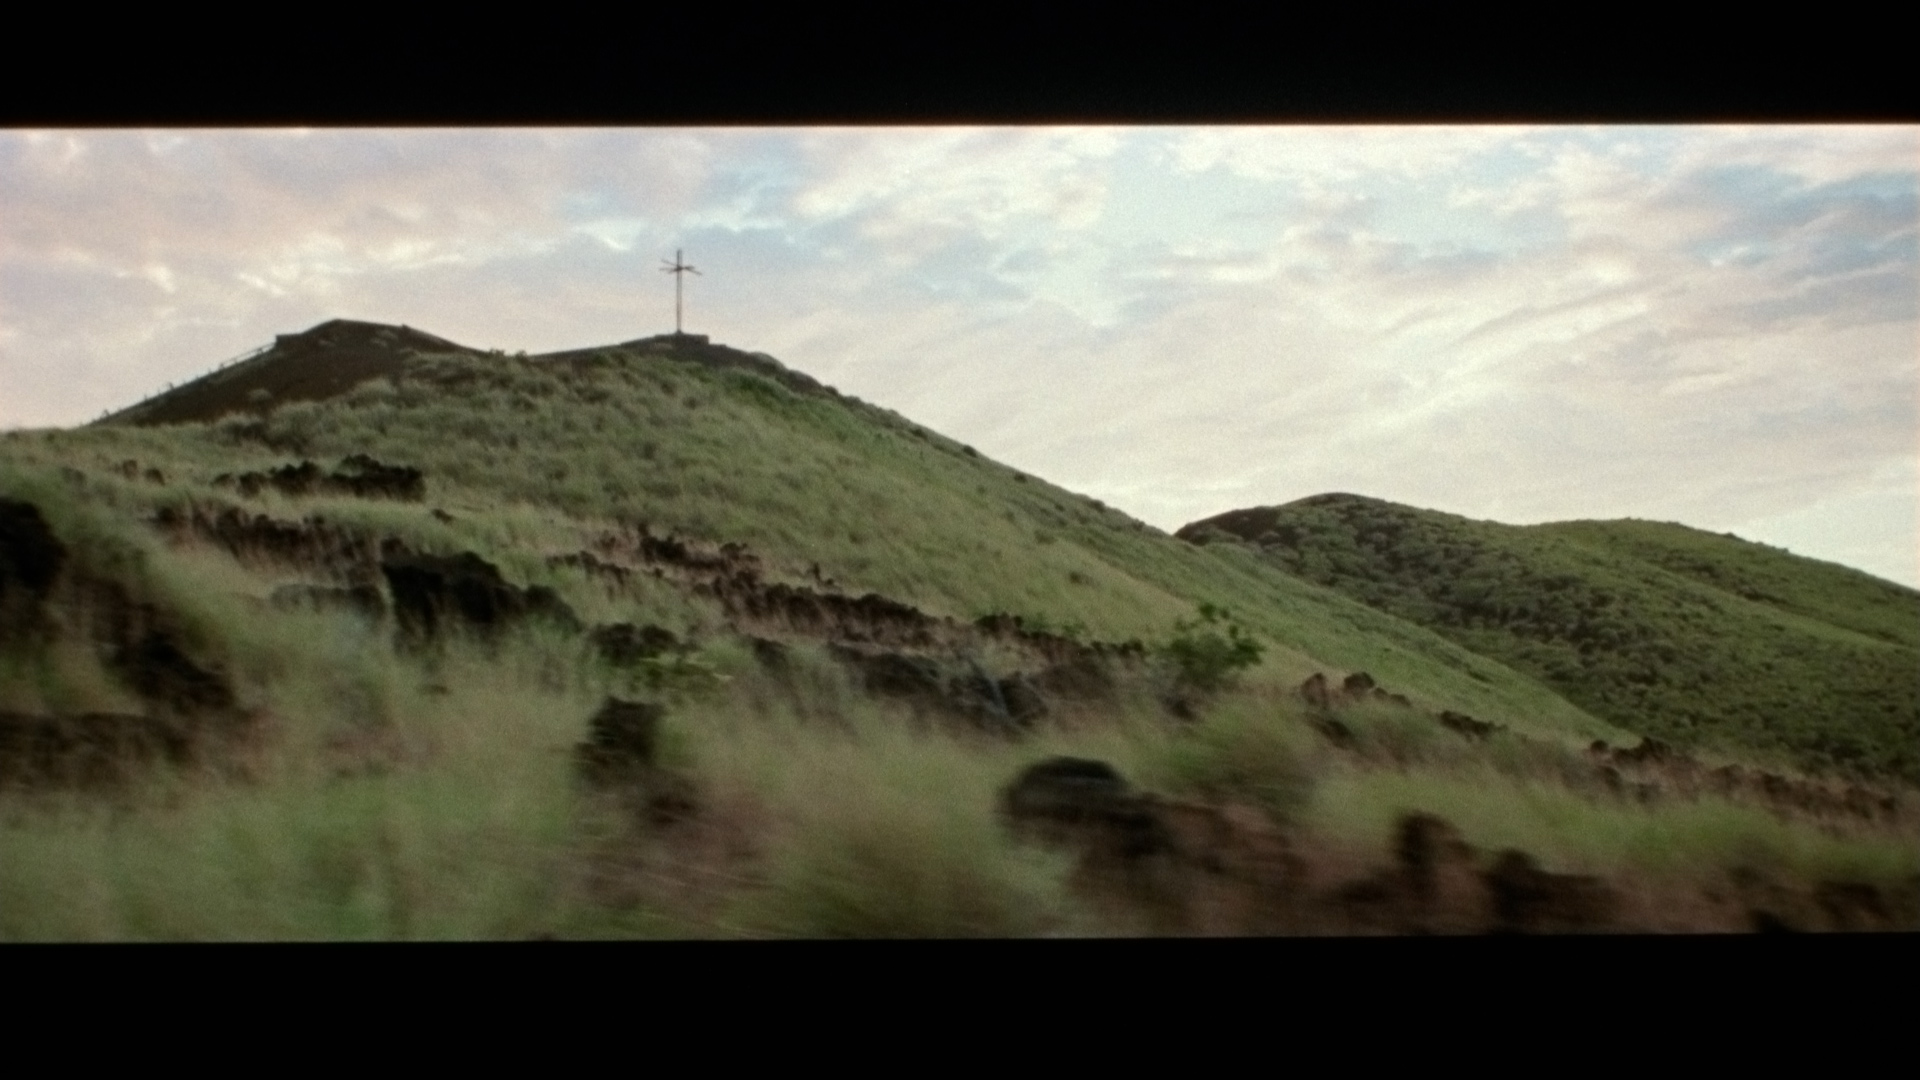 green hills seen from the road for singer Karim Ouellet music video of La Mer A Boire filmed by Les Gamins